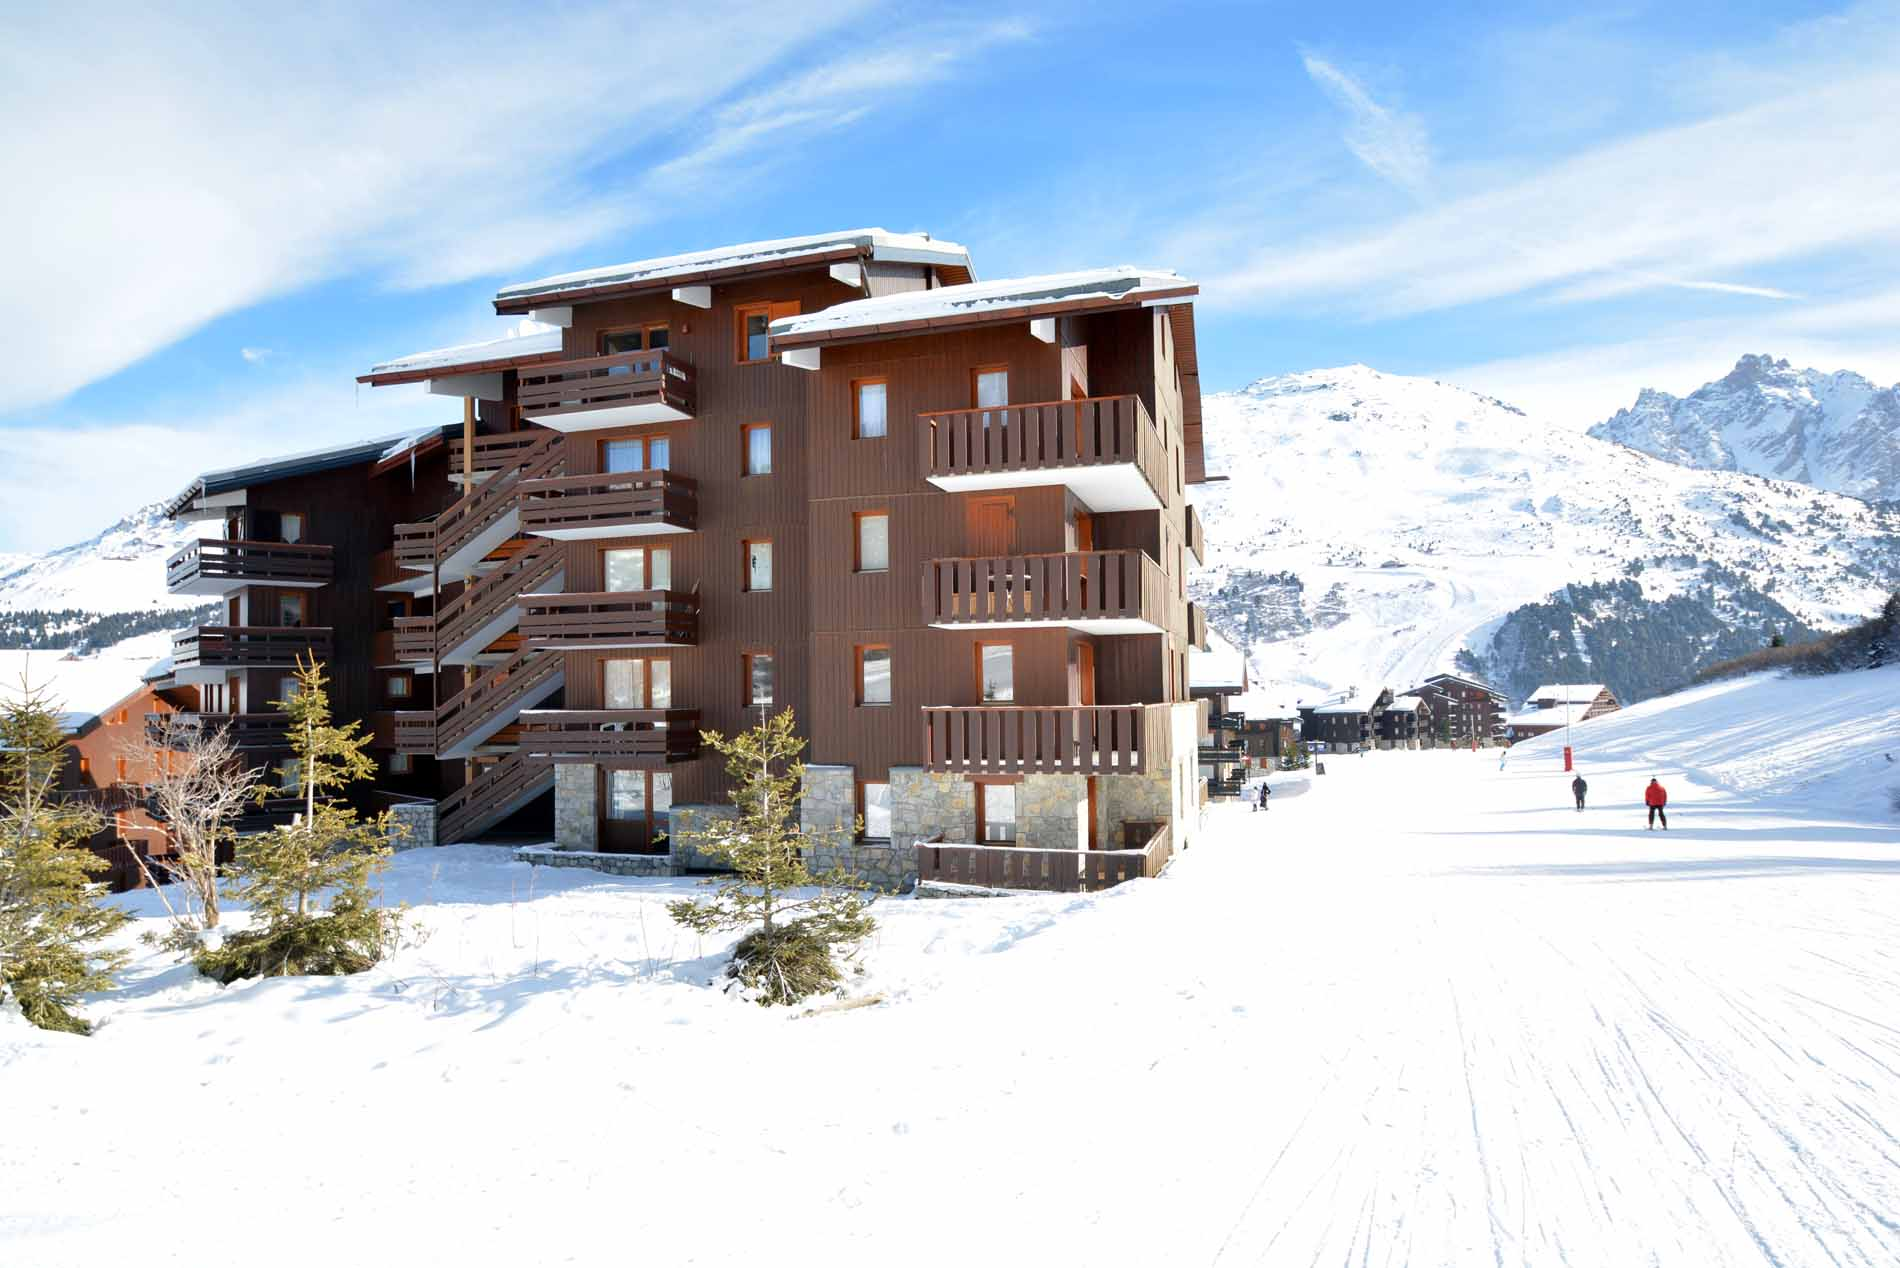 Meribel Appartments 28 Images Meribel Chalet Apartment Rentals Book Apartments In Meribel